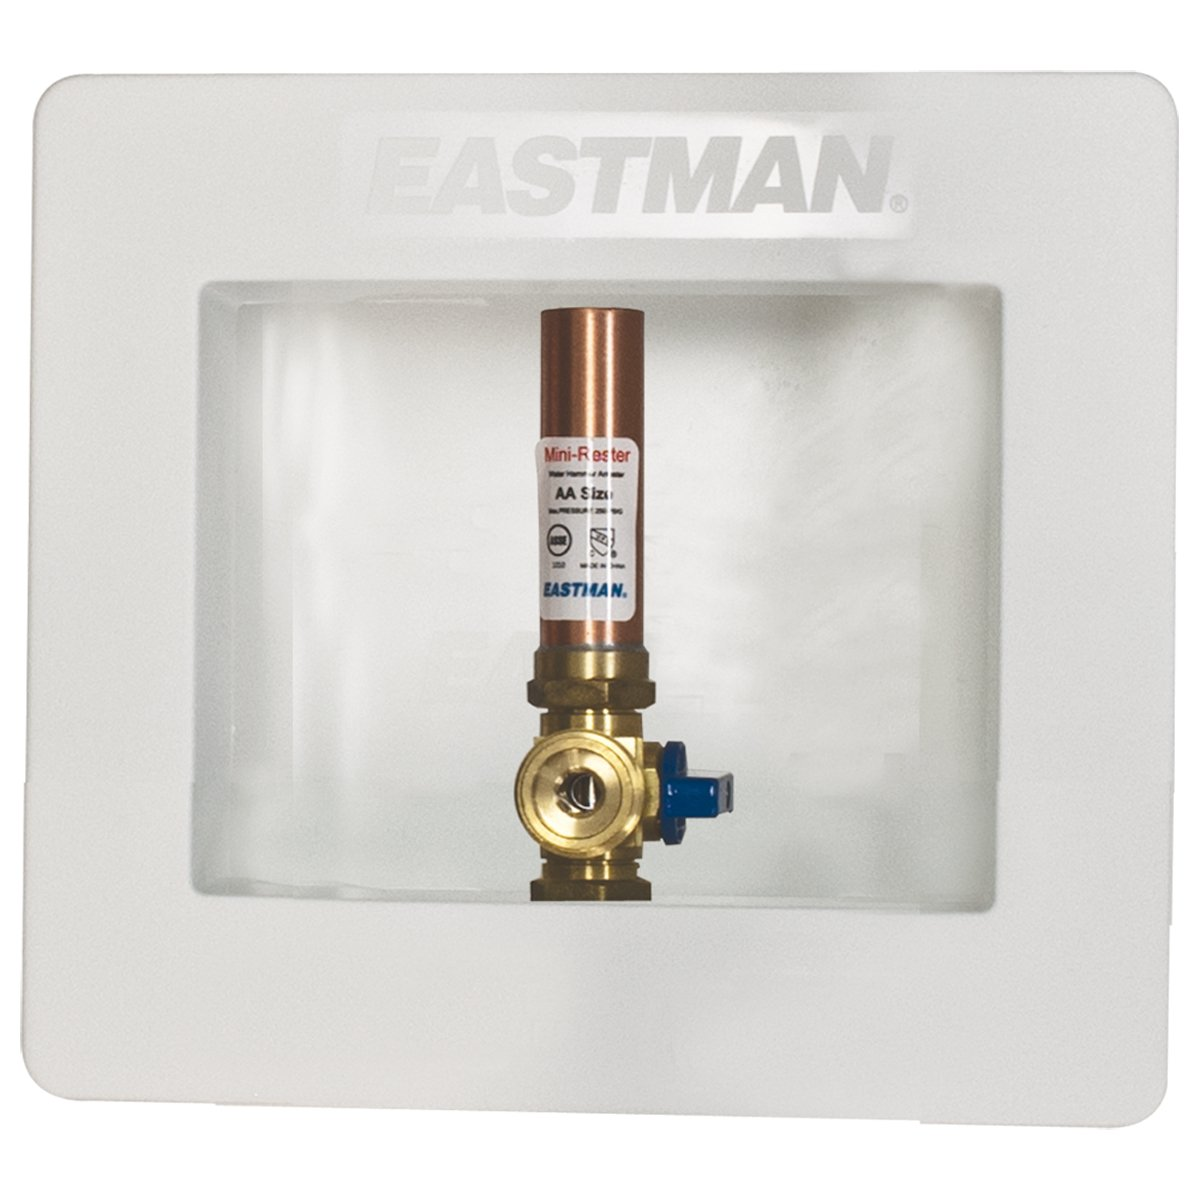 Eastman 60242 Pre-assembled Ice Maker Outlet Box, 1/2-Inch Crimp PEX Connection with Installed 1/4-Turn Ball Valve and Hammer Arrester, White